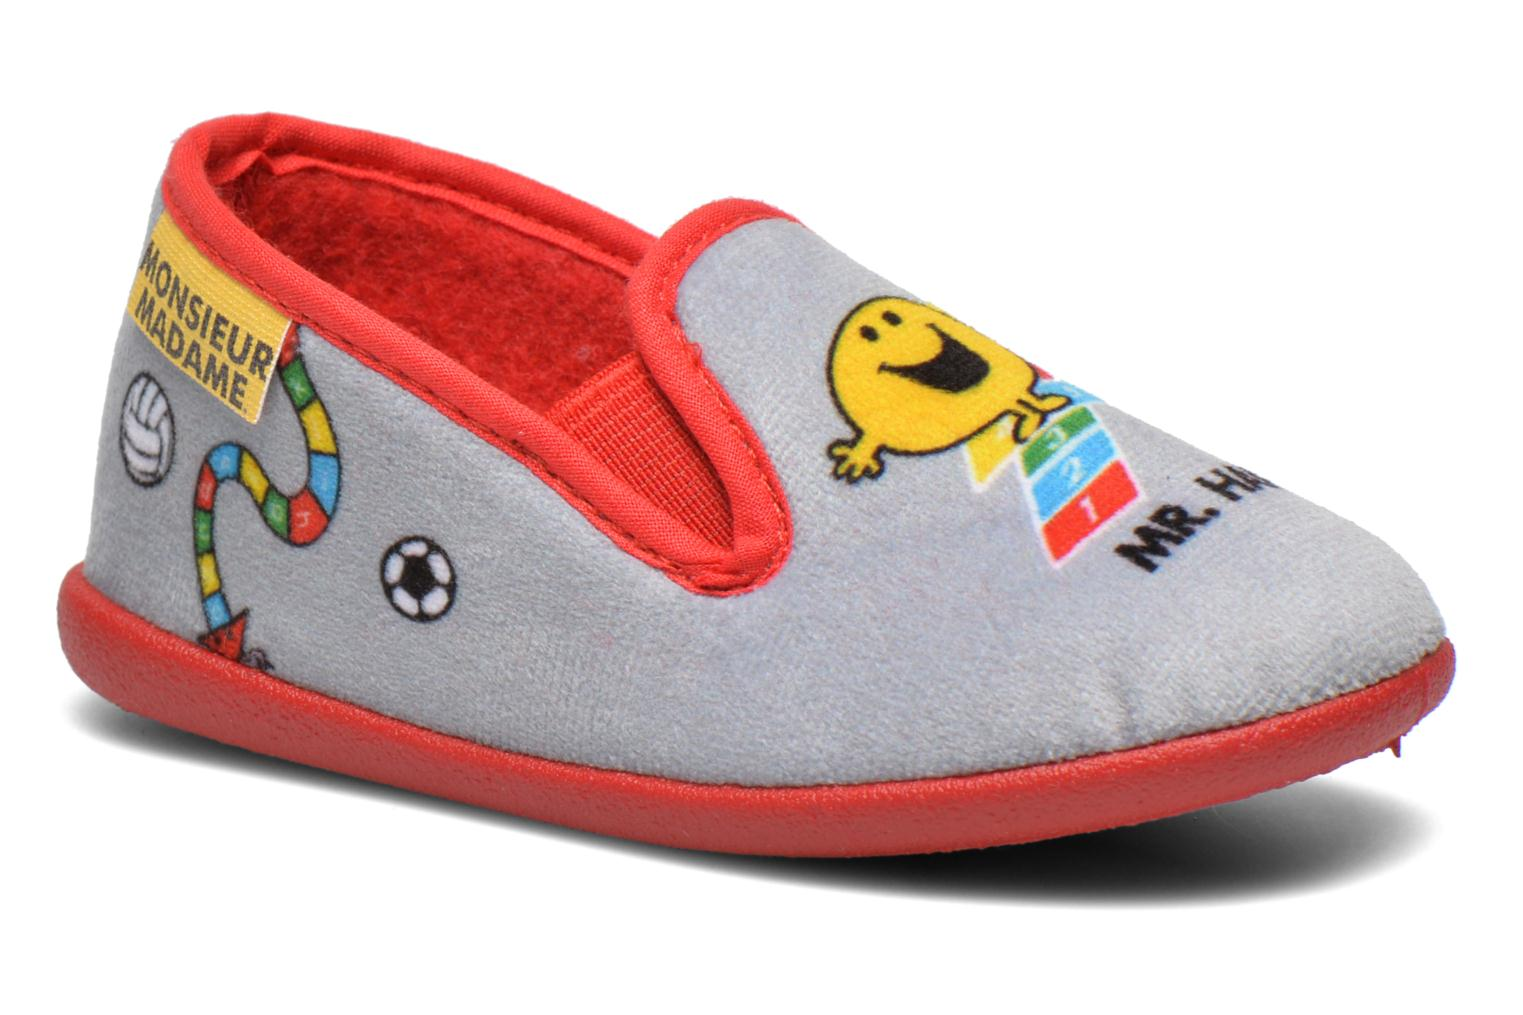 Pantoffels Sans Gene School by Be Only